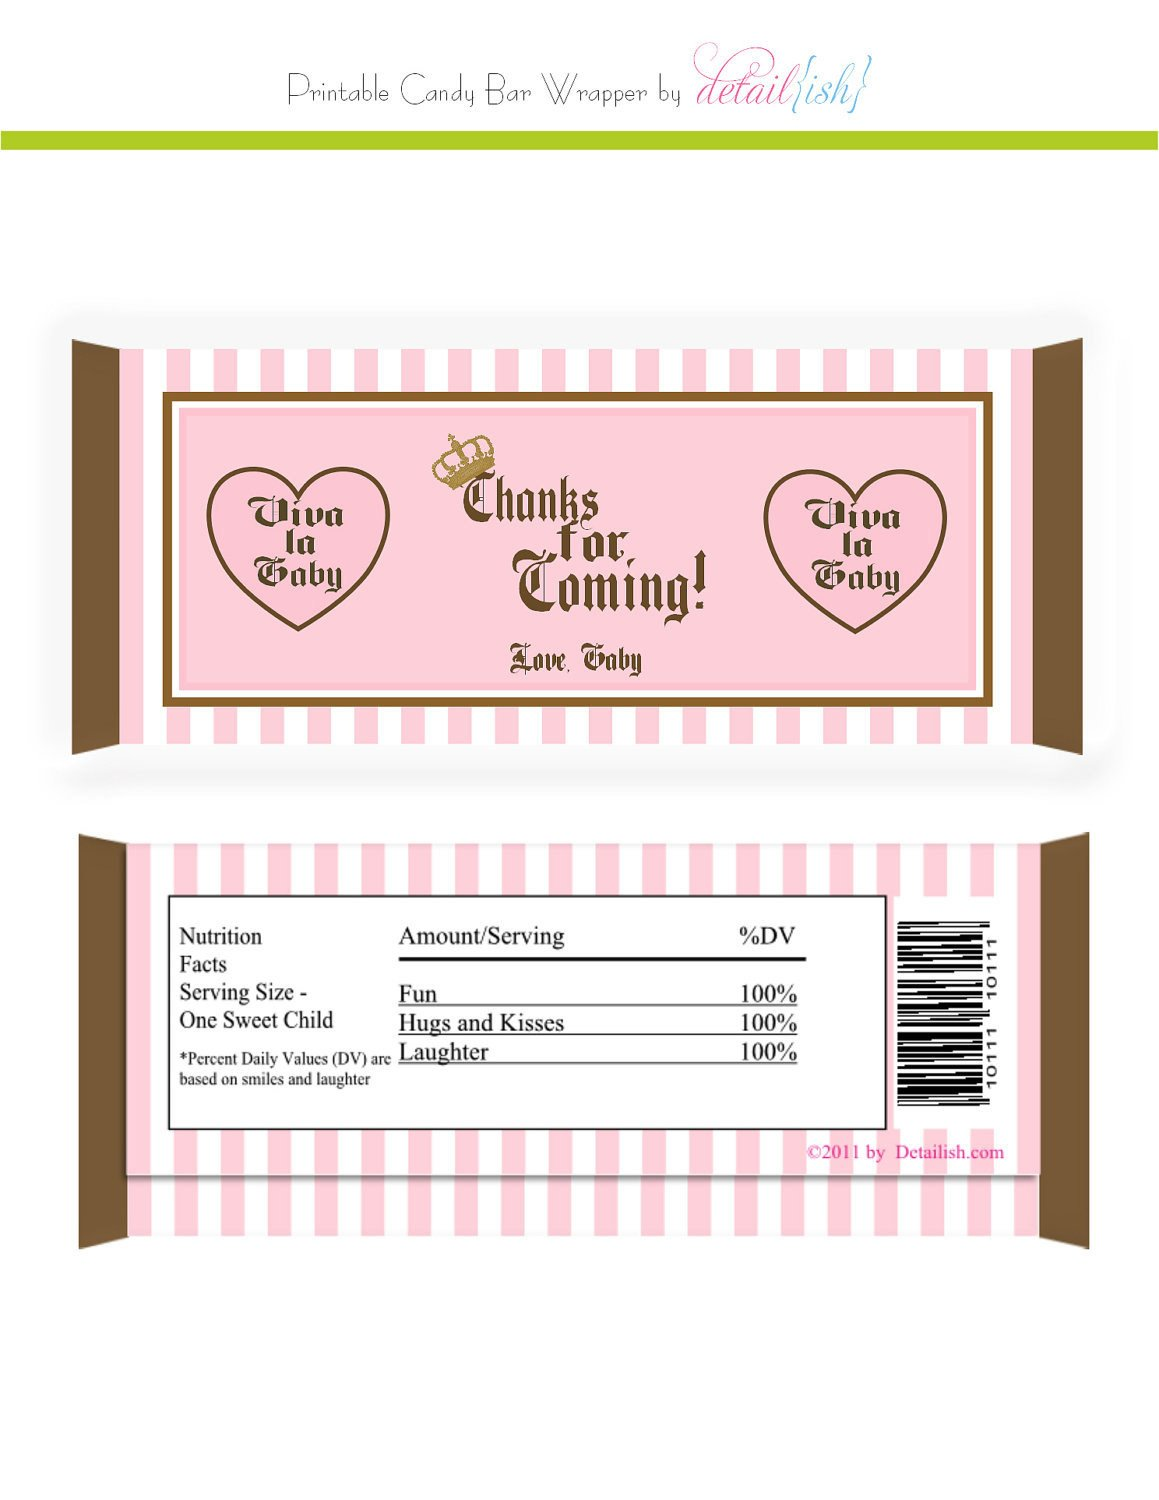 Chocolate Bar Wrapper Template Items Similar to Juicy Couture Inspired Candy Bar Wrapper